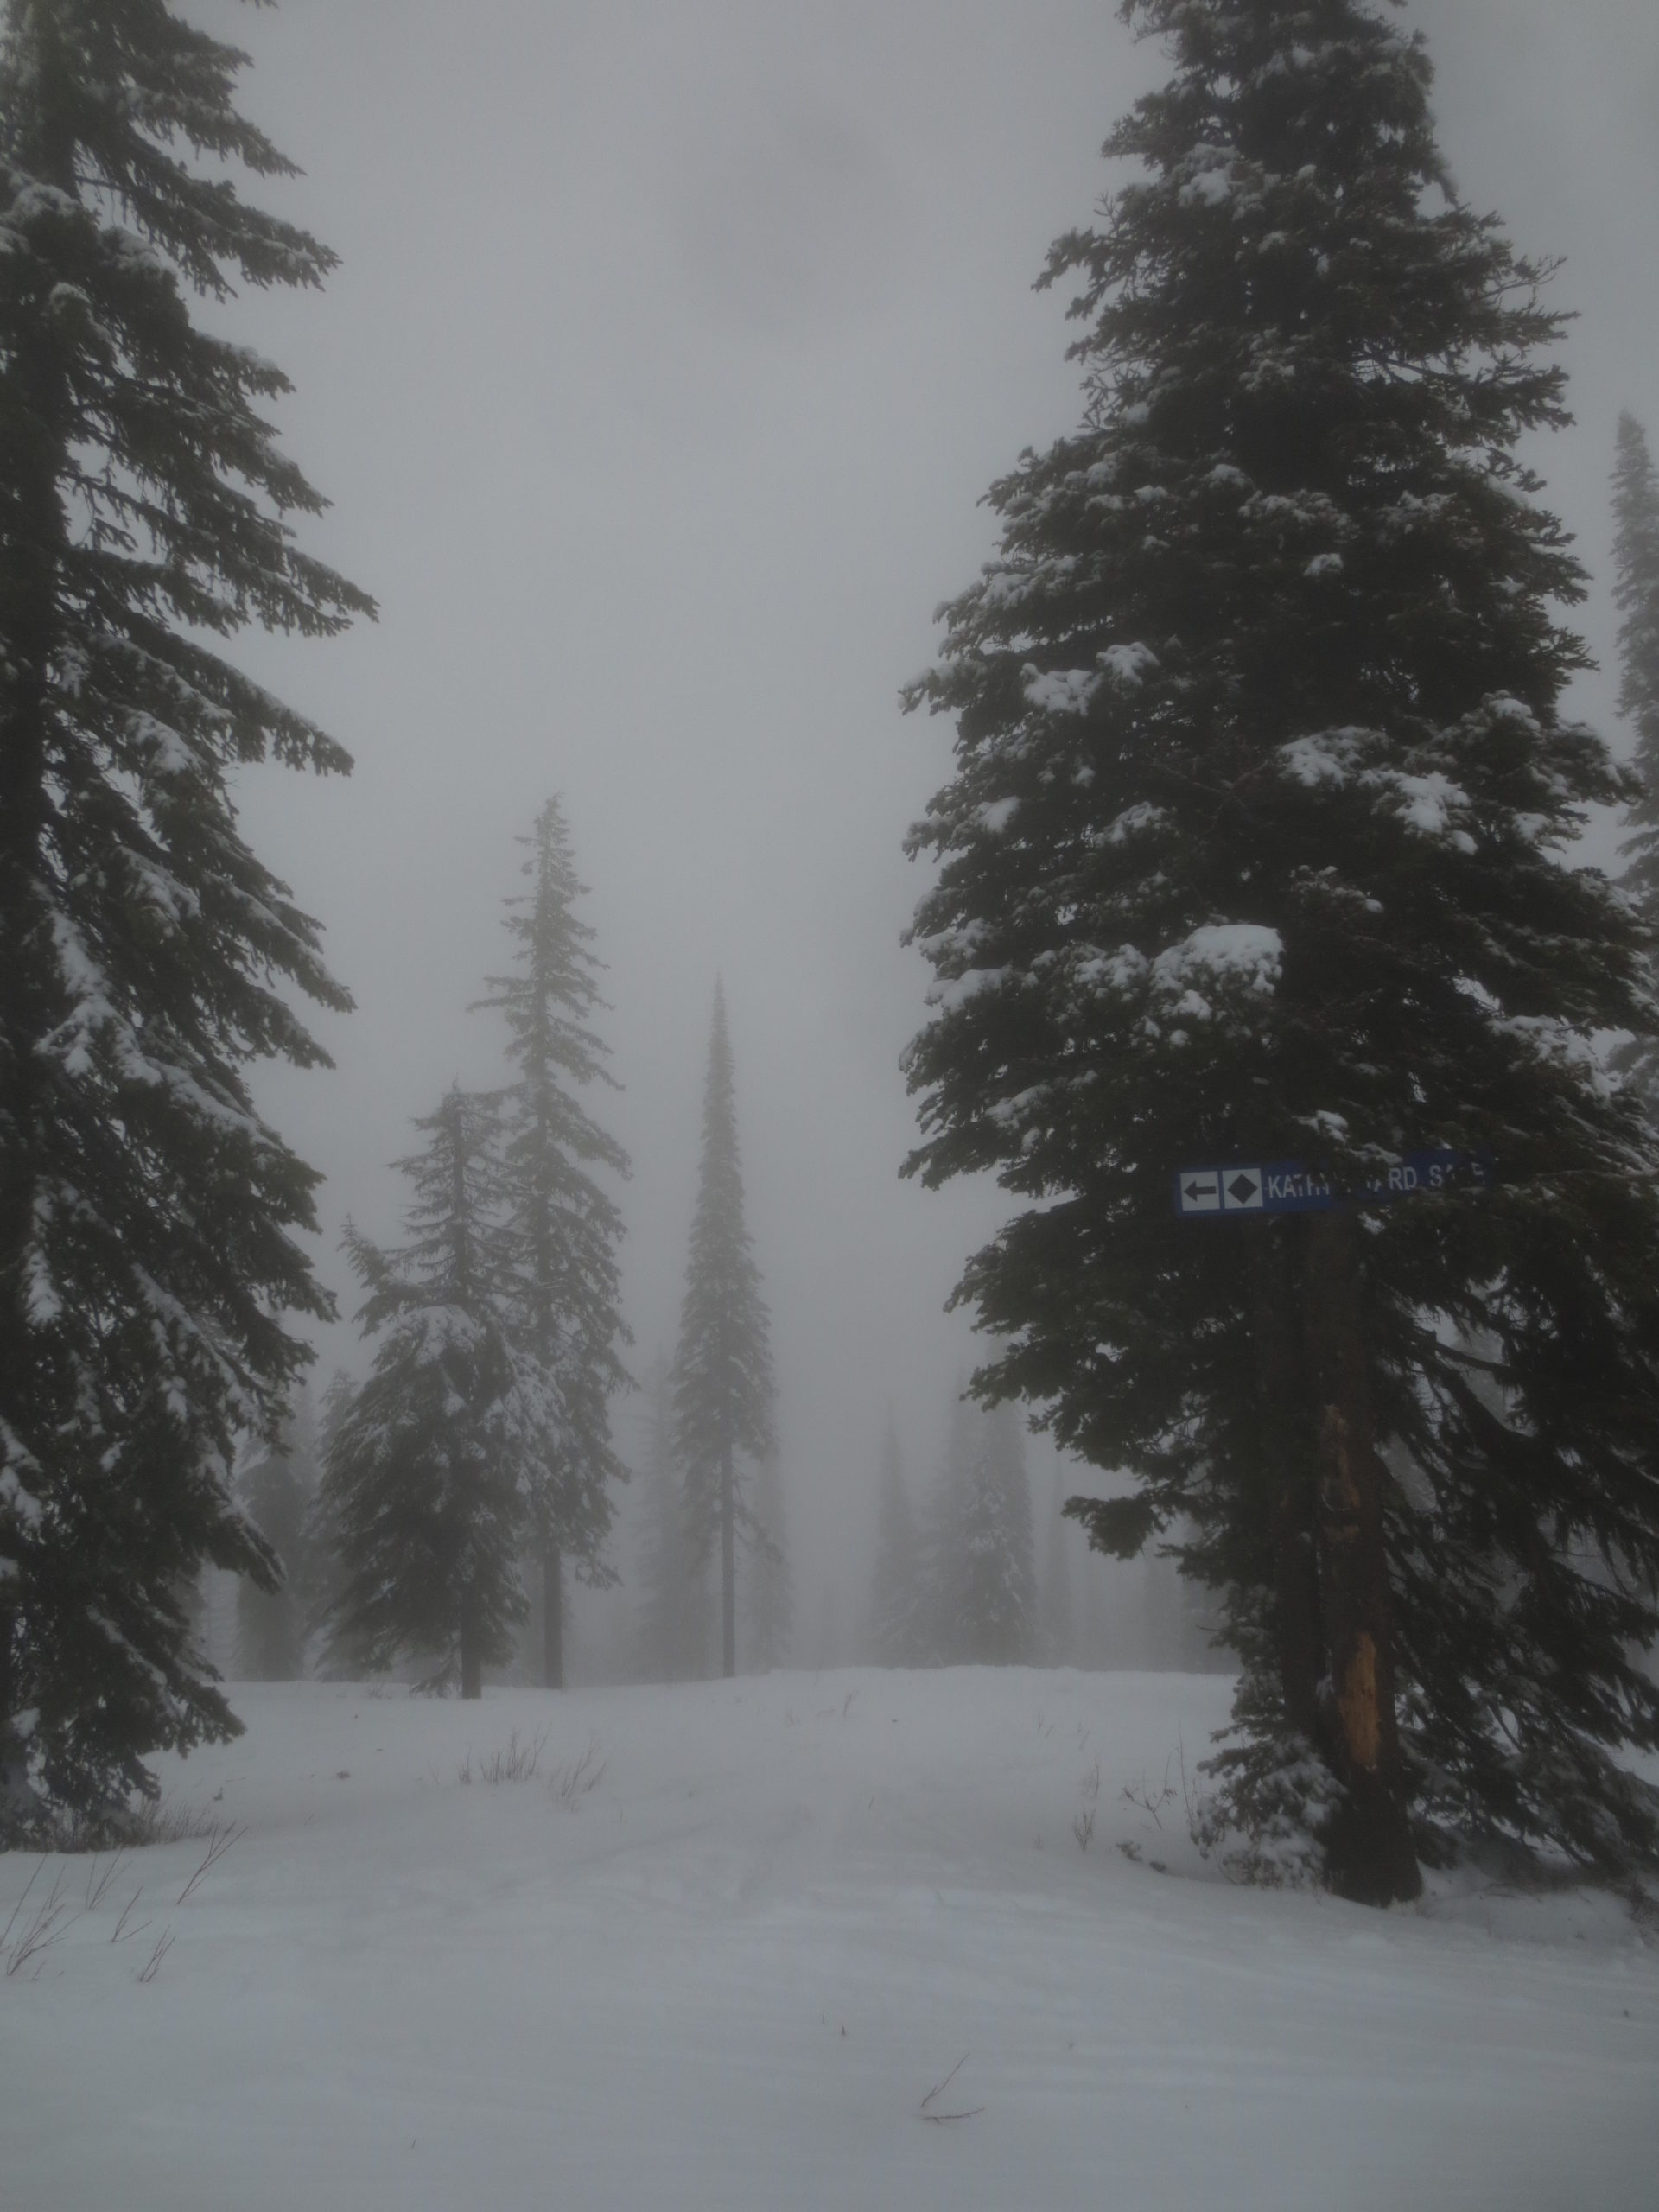 view of the top of a ski run with trees on a foggy day